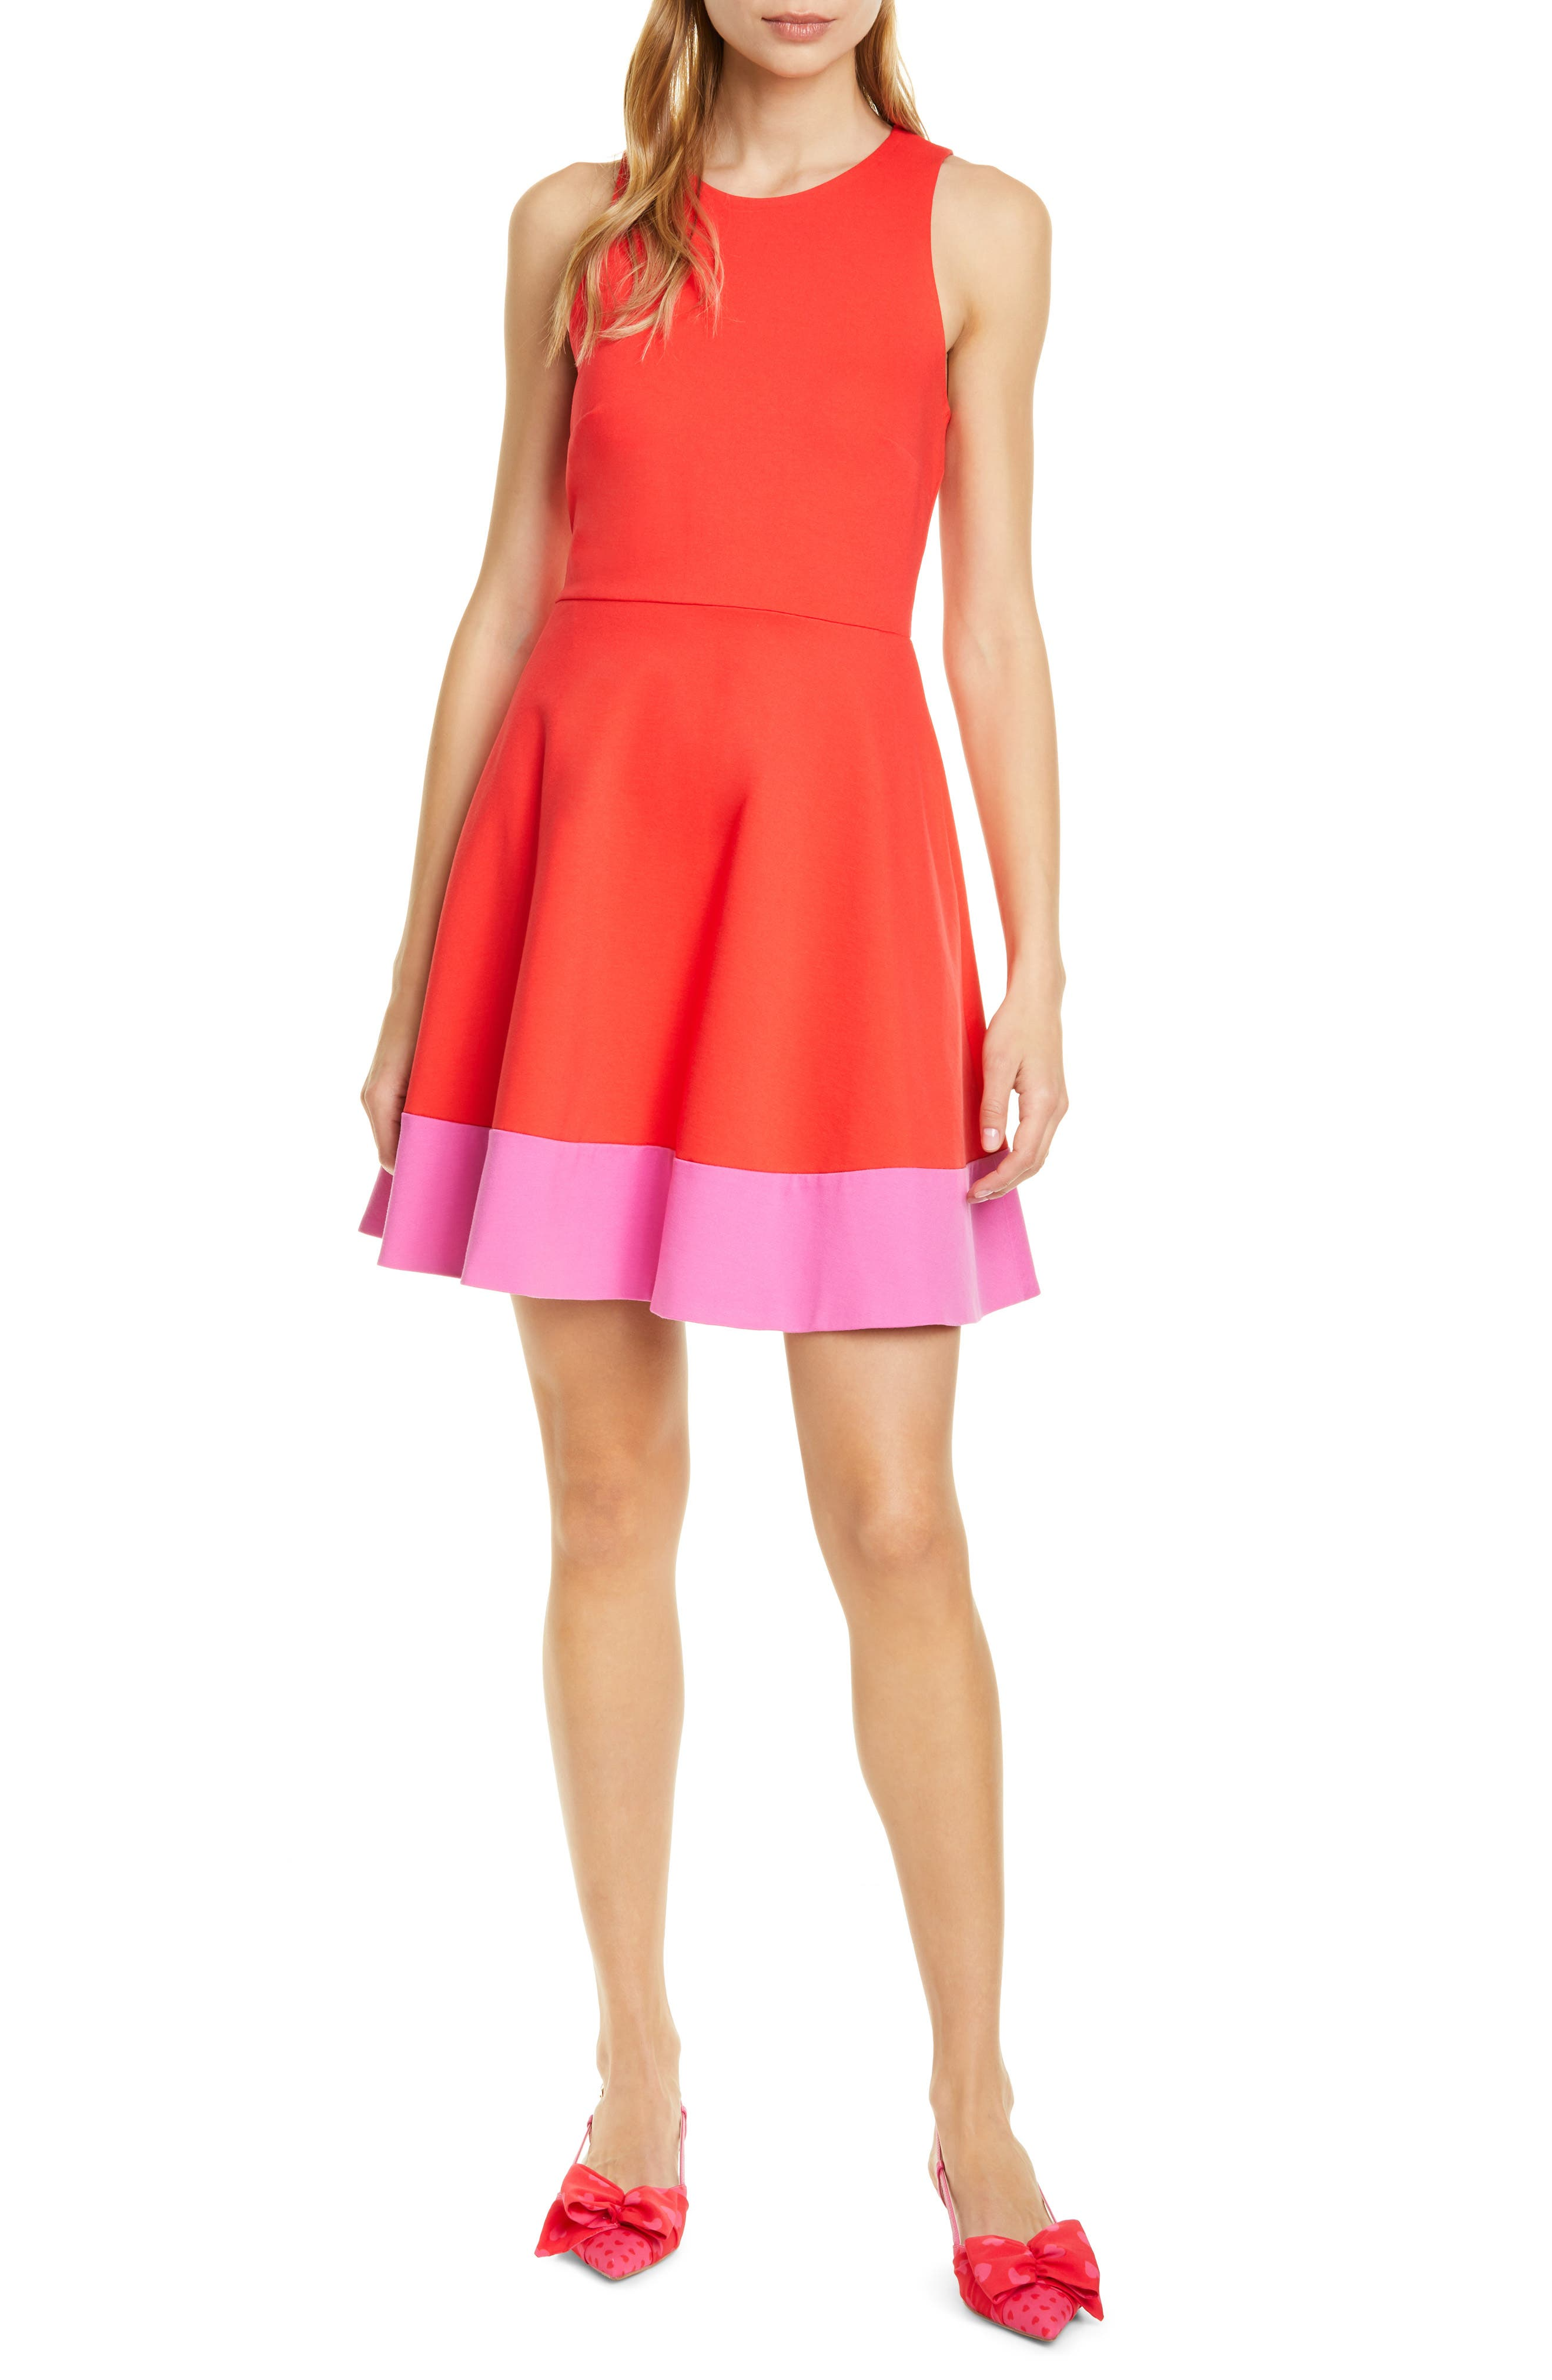 Kate Spade New York Colorblock Fit & Flare Dress, Red